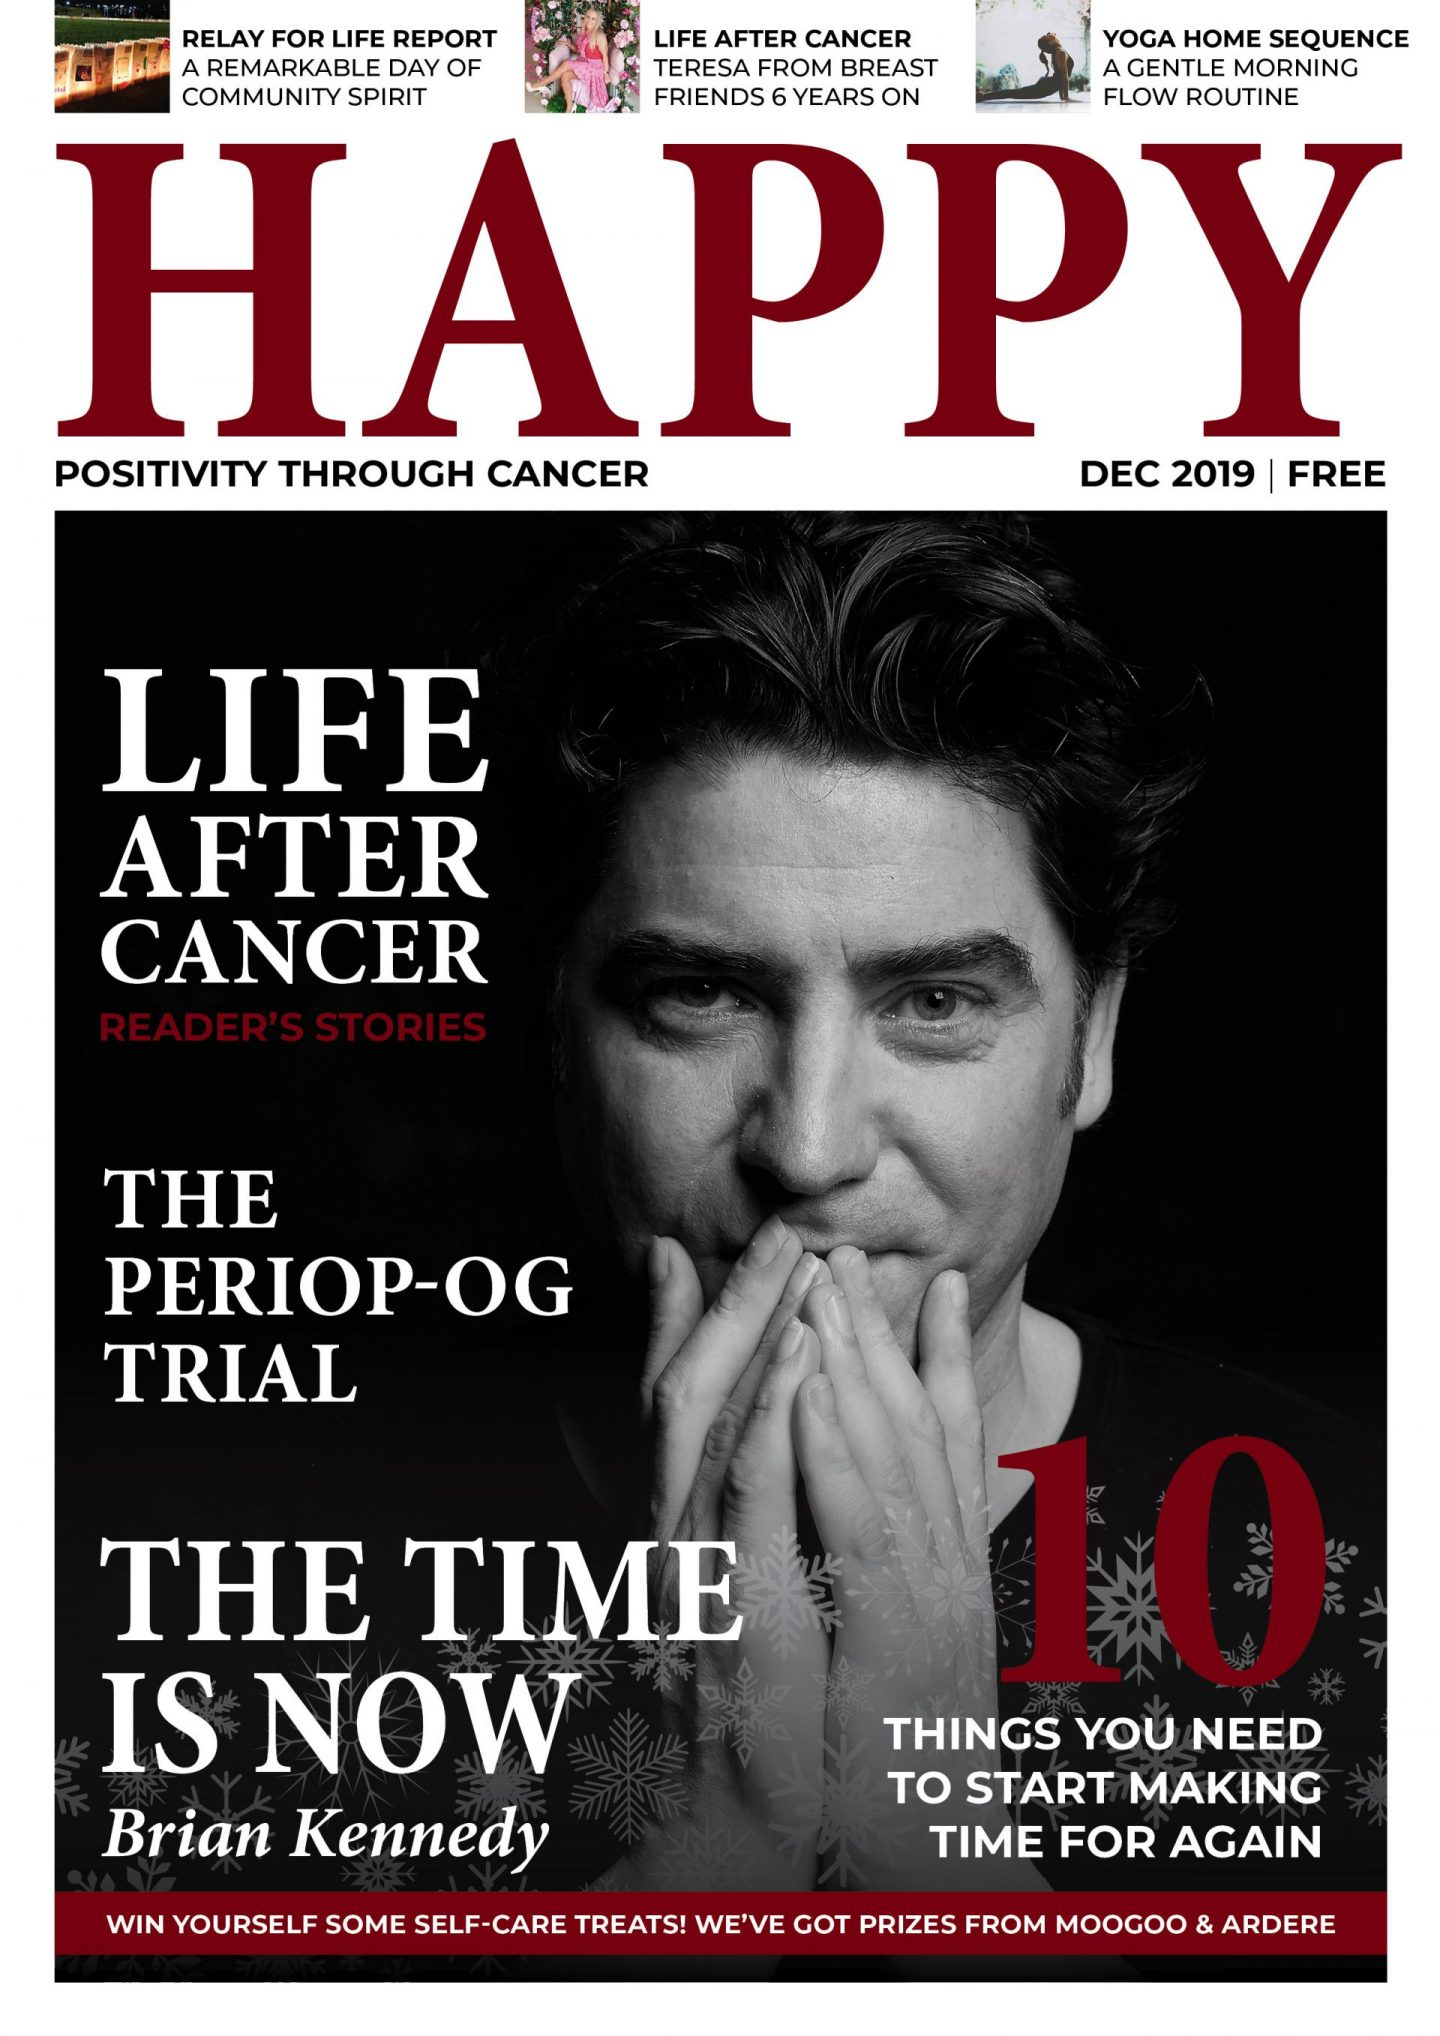 IT'S HERE! Issue 3 of Happy Magazine is out now